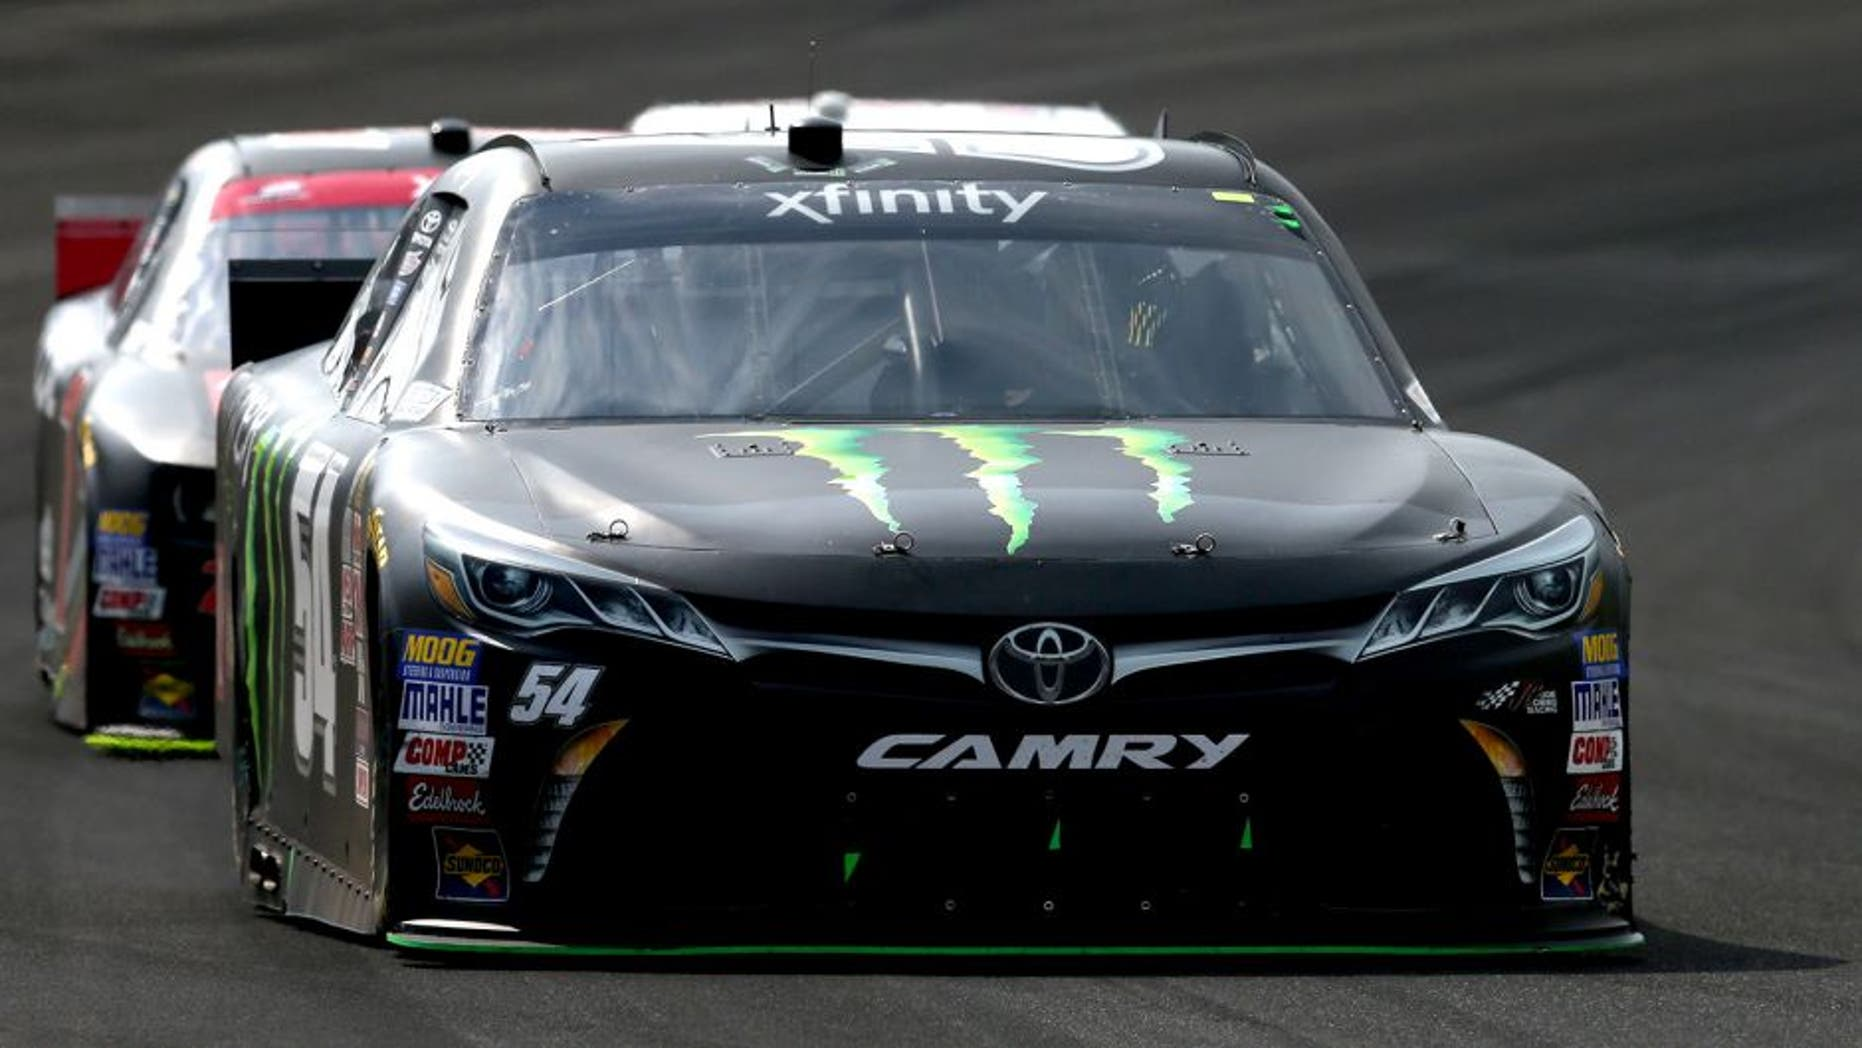 INDIANAPOLIS, IN - JULY 25: Kyle Busch, driver of the #54 Monster Energy Toyota, races during the NASCAR XFINITY Series Lilly Diabetes 250 at Indianapolis Motor Speedway on July 25, 2015 in Indianapolis, Indiana. (Photo by Sean Gardner/NASCAR via Getty Images)